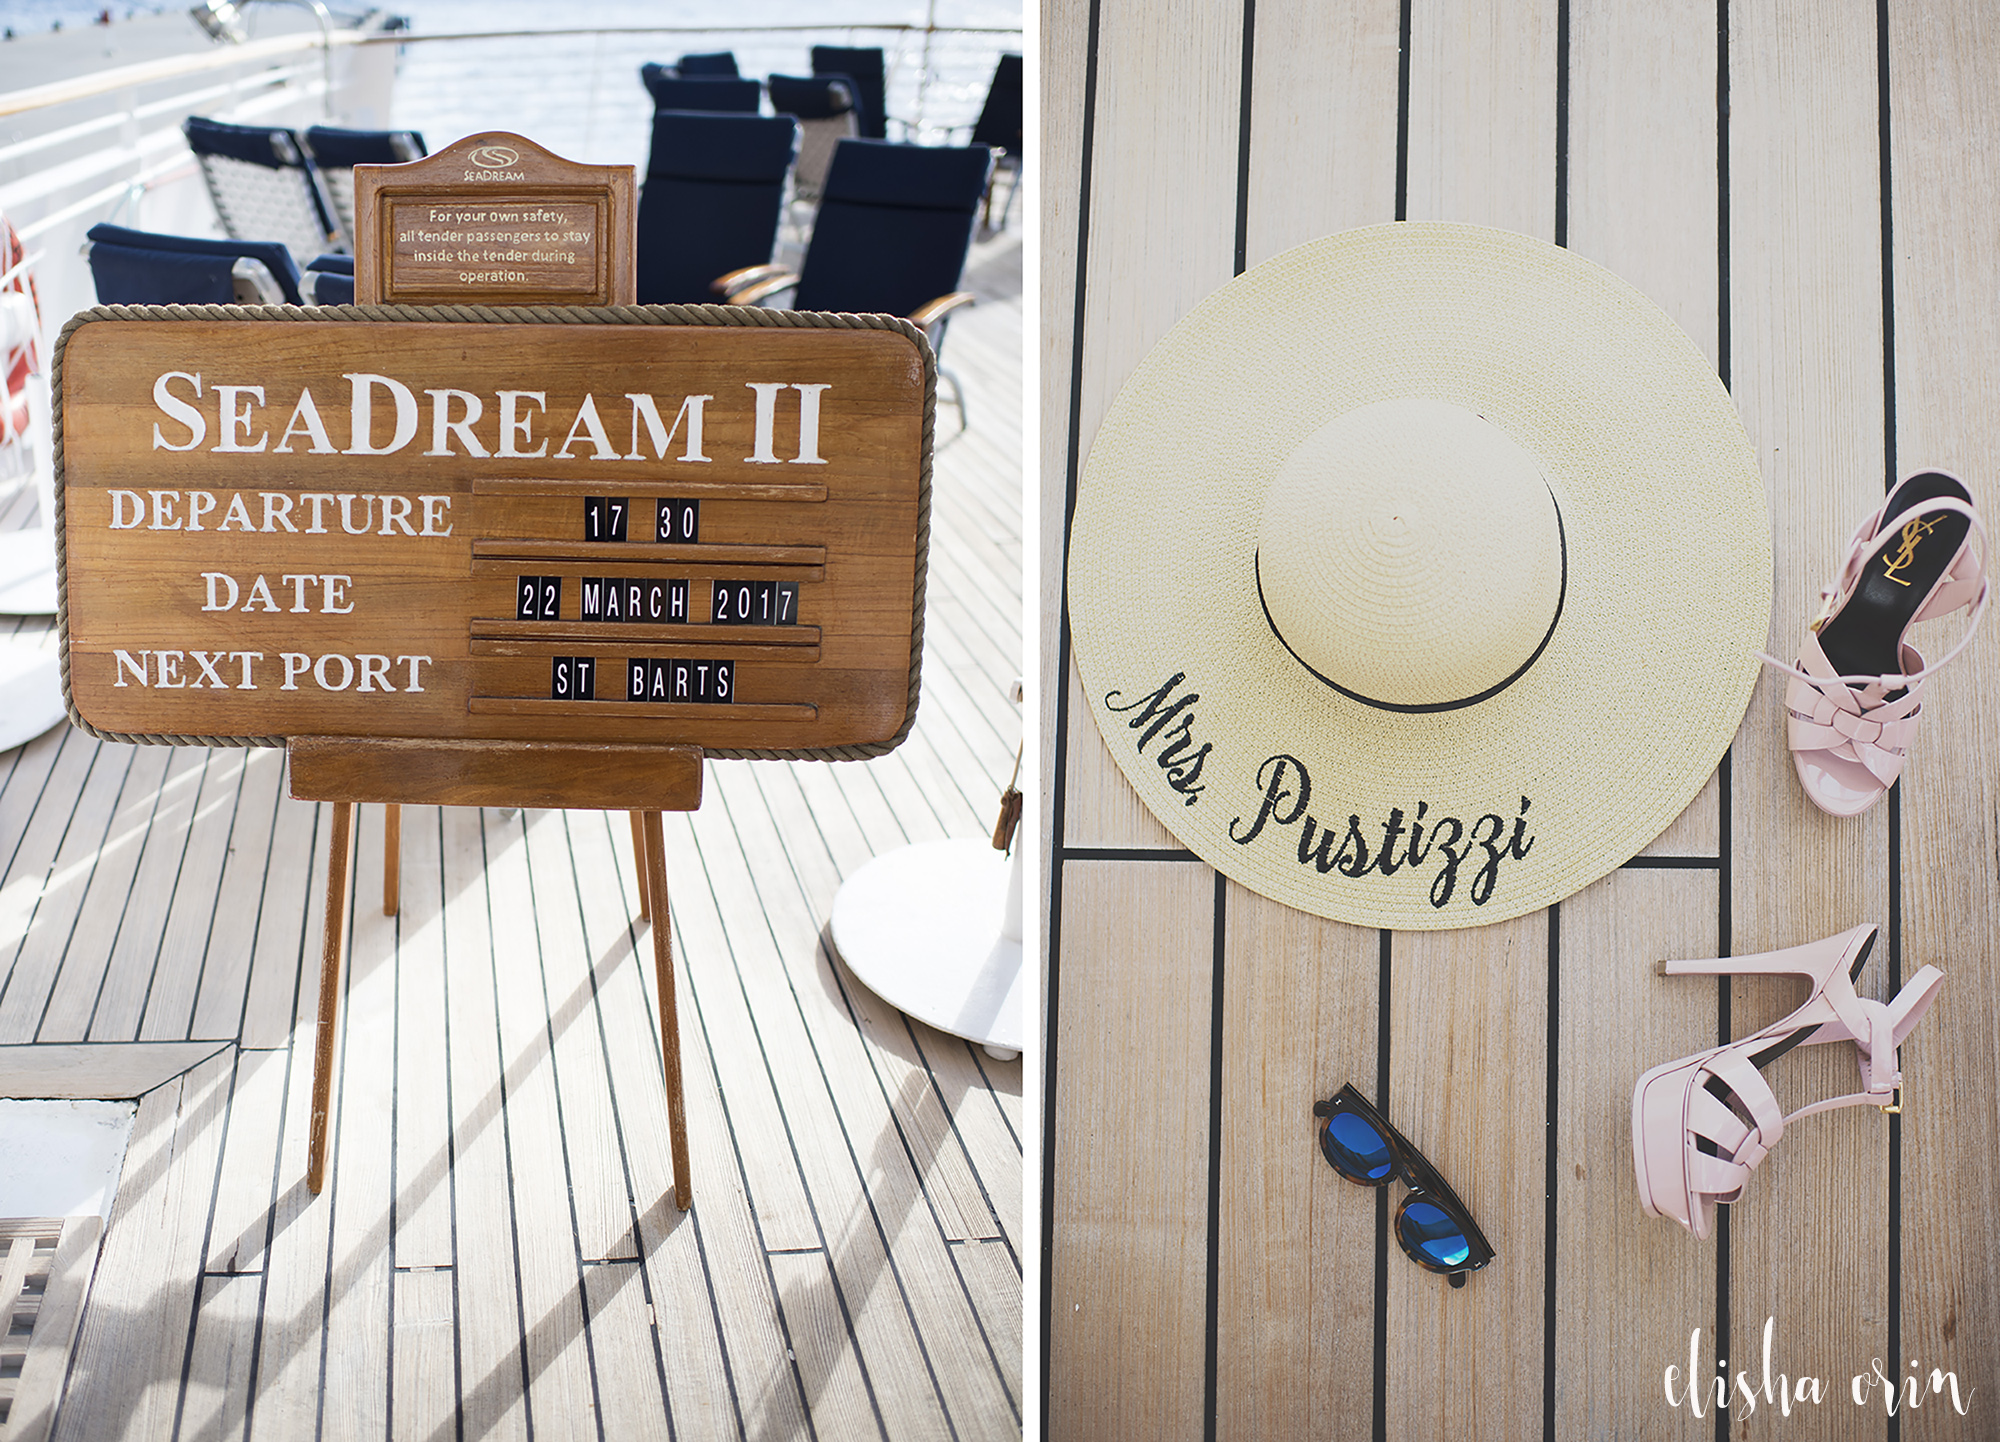 brides-shoes-and-hat-photos-of-a-st-barts-wedding